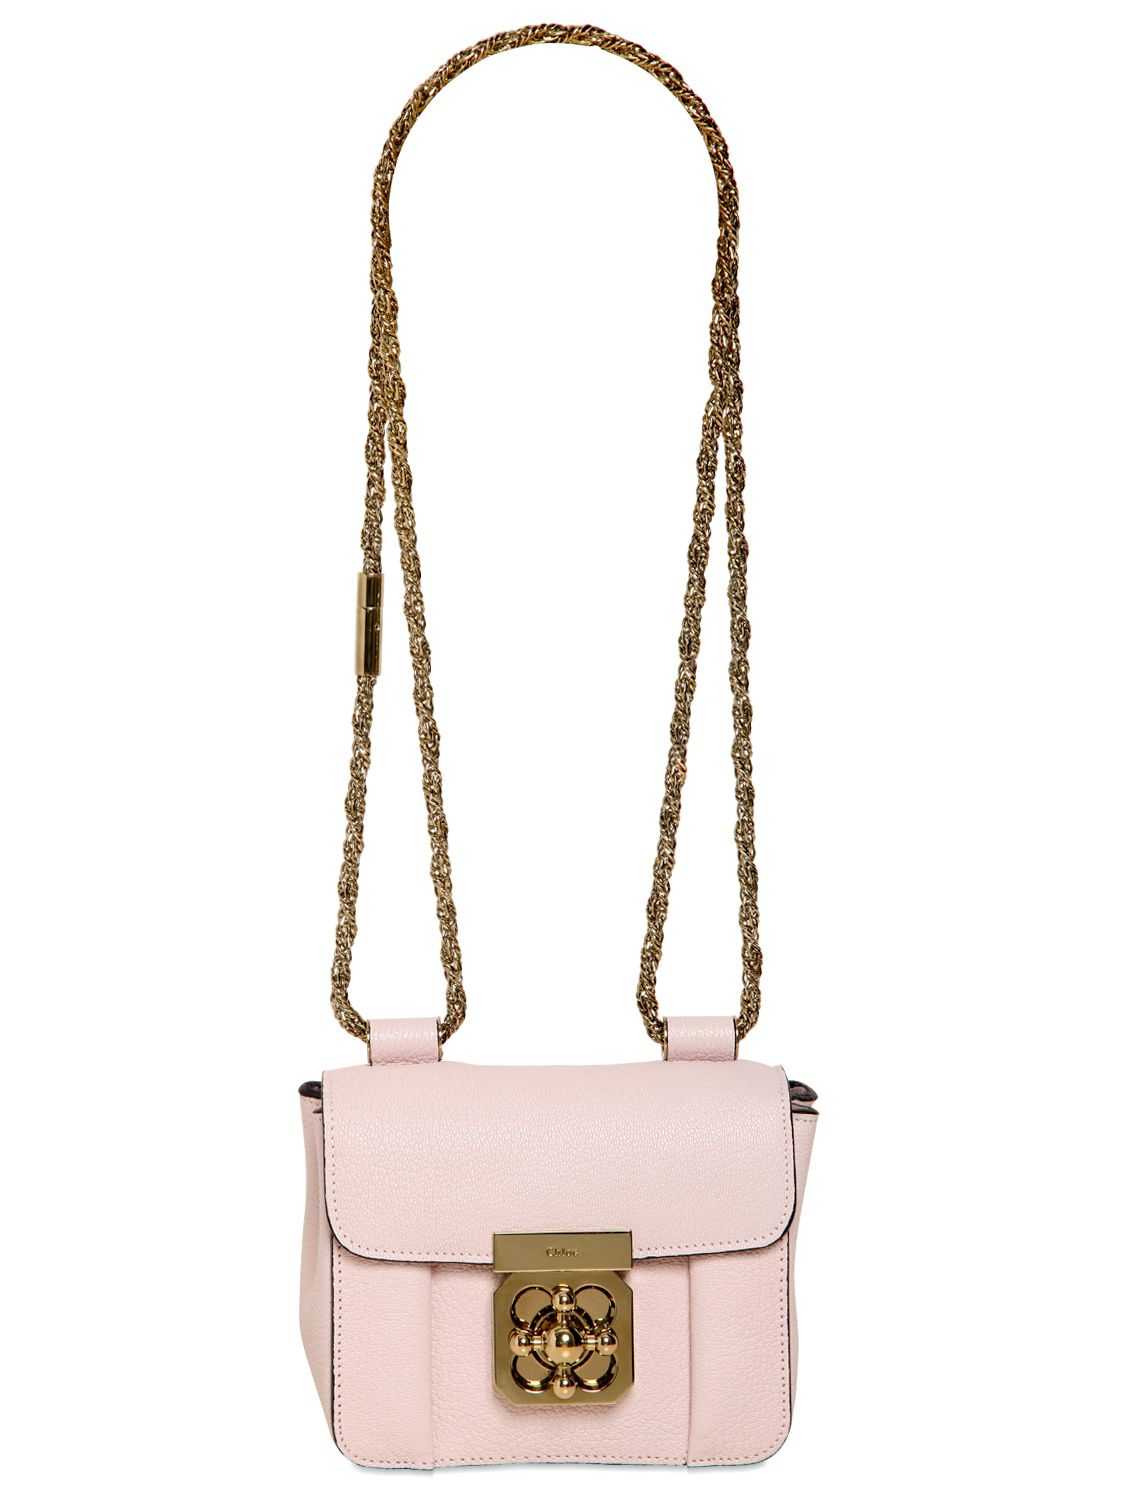 elsie mini bag in grained leather